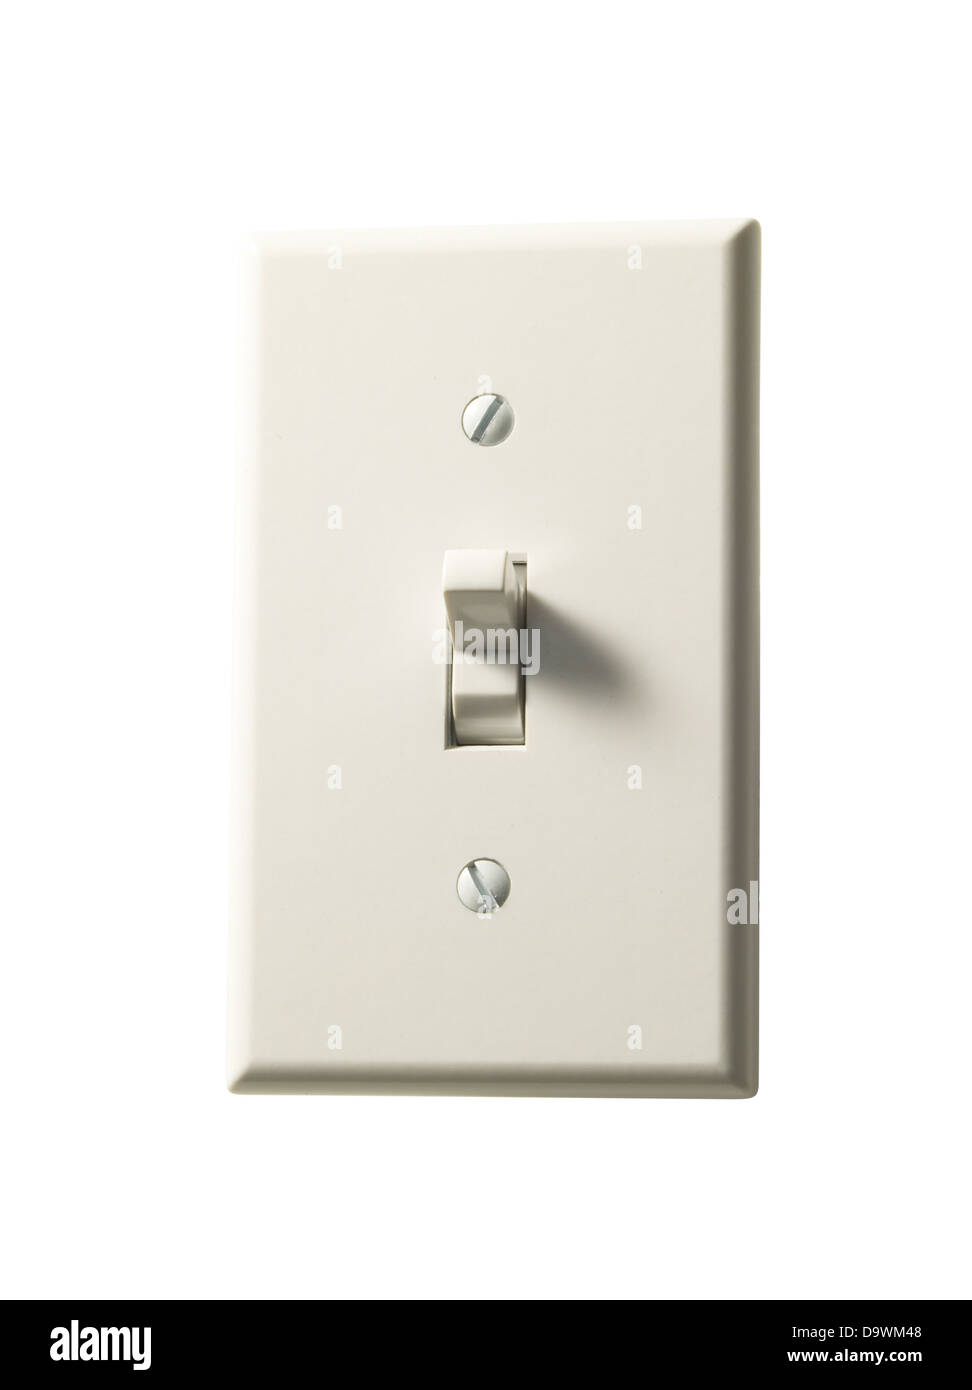 Wall switch - Stock Image